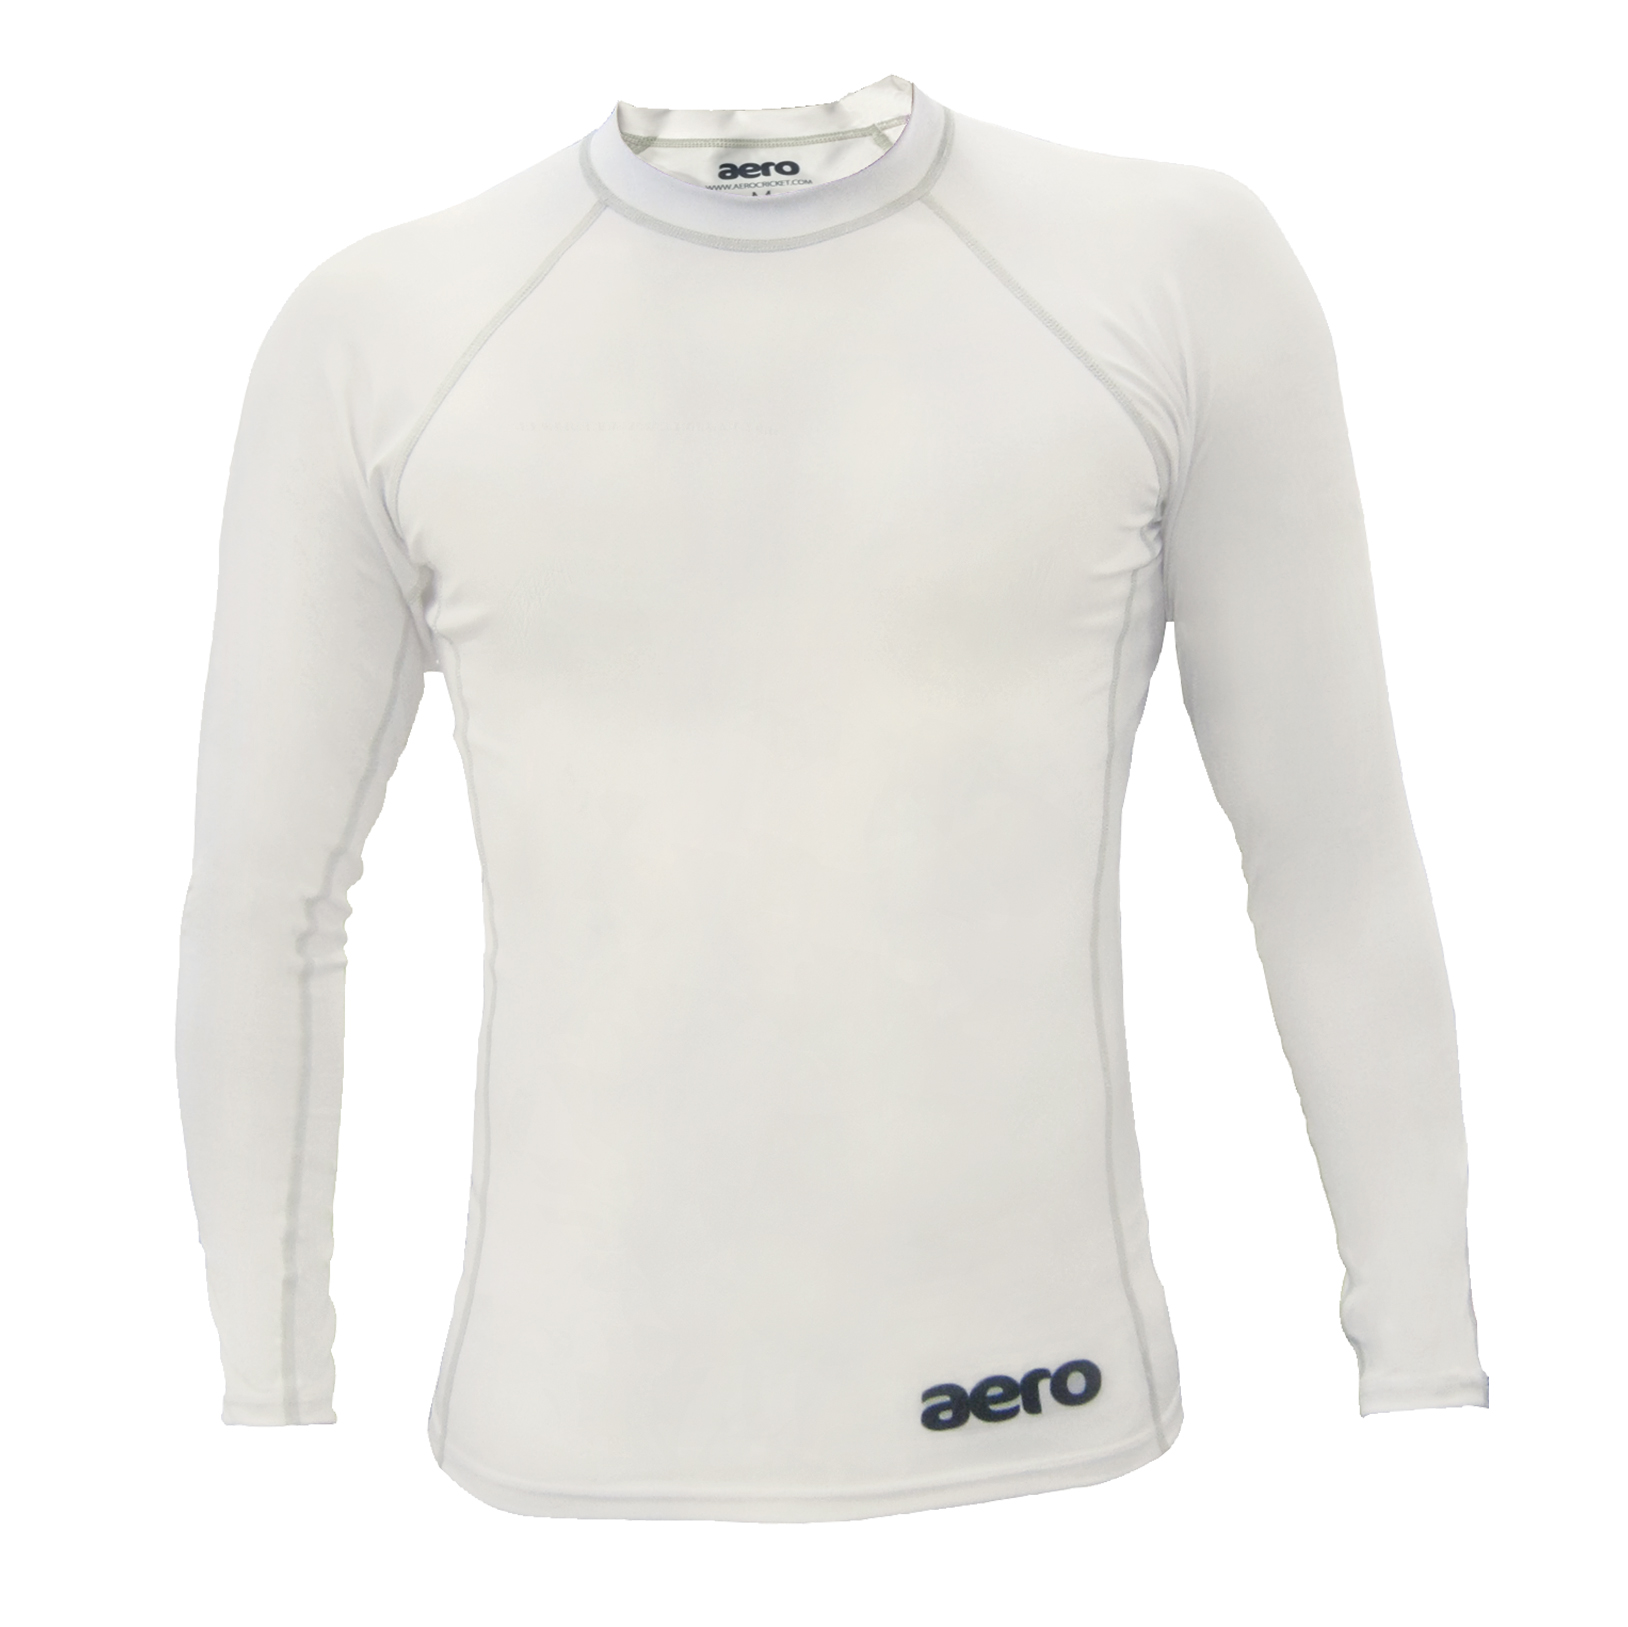 Aero Compression Shirt Front